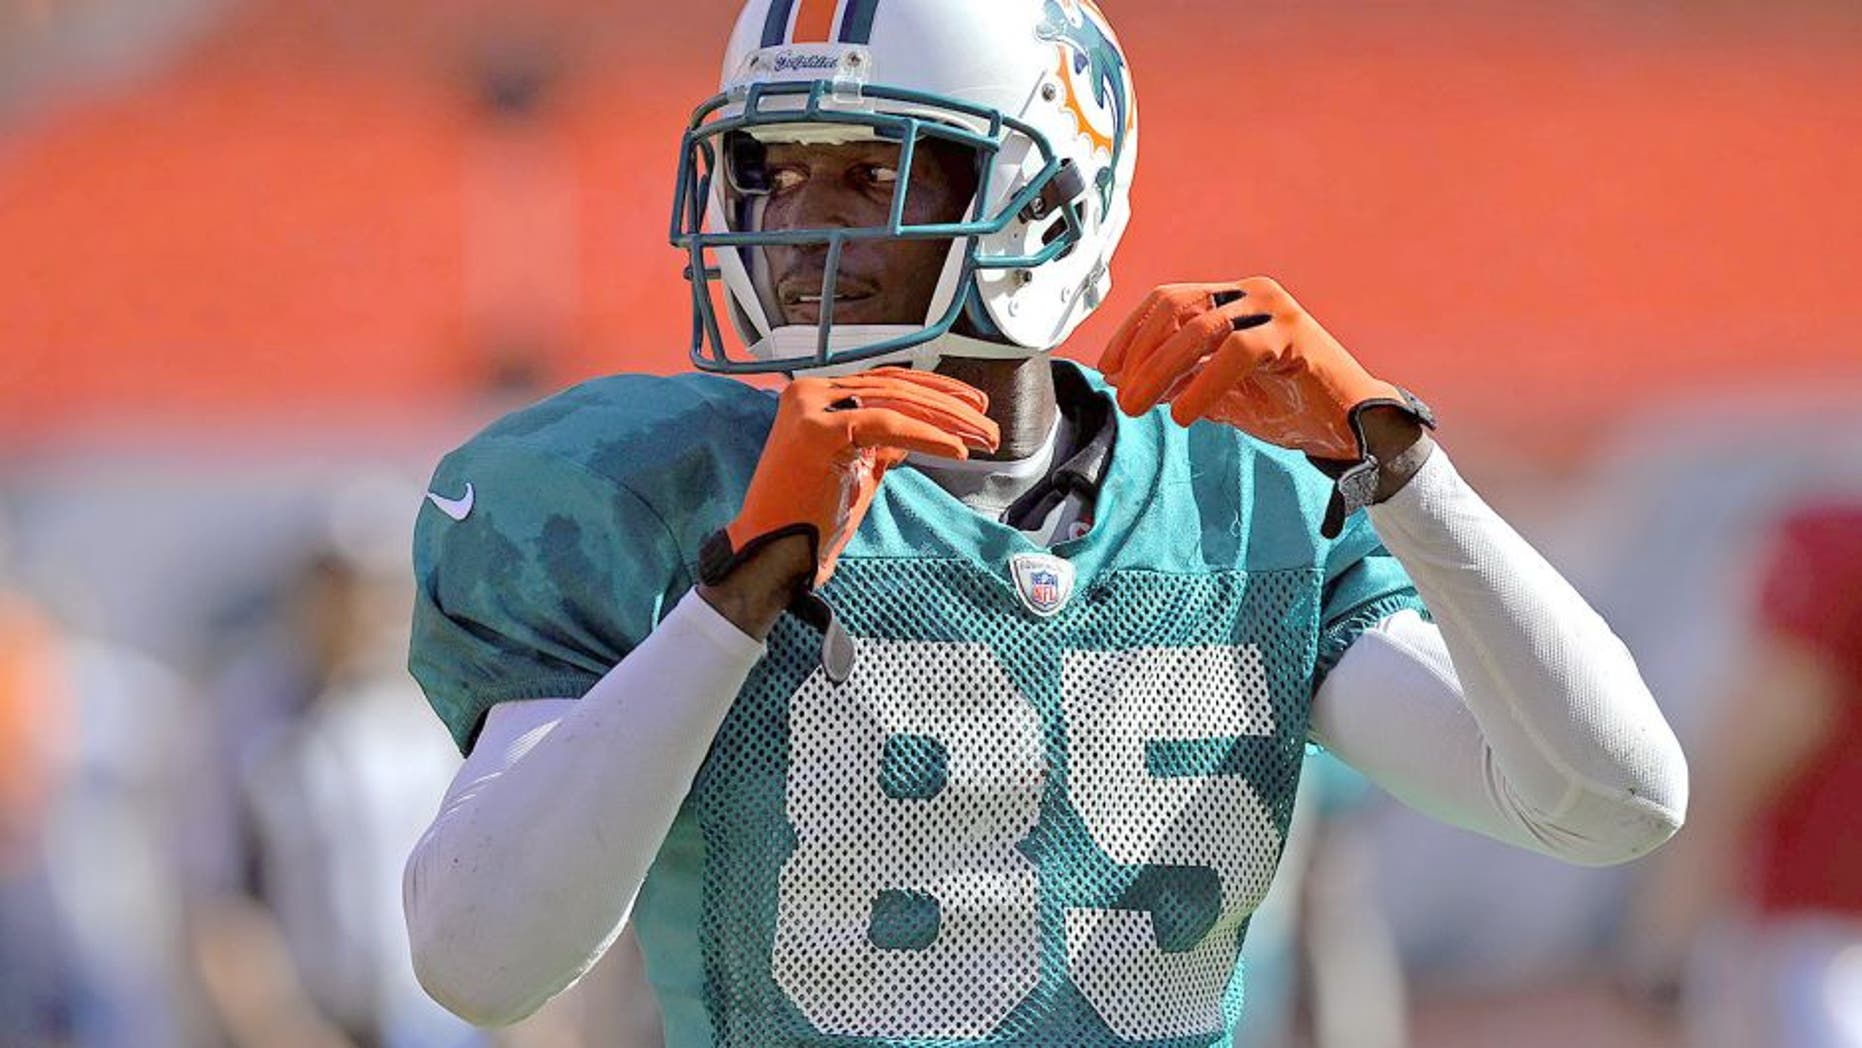 Aug. 4, 2012; Miami, FL, USA; Miami Dolphins wide receiver Chad Johnson (85) during a scrimmage at Sun Life Stadium. Mandatory Credit: Steve Mitchell-USA TODAY Sports